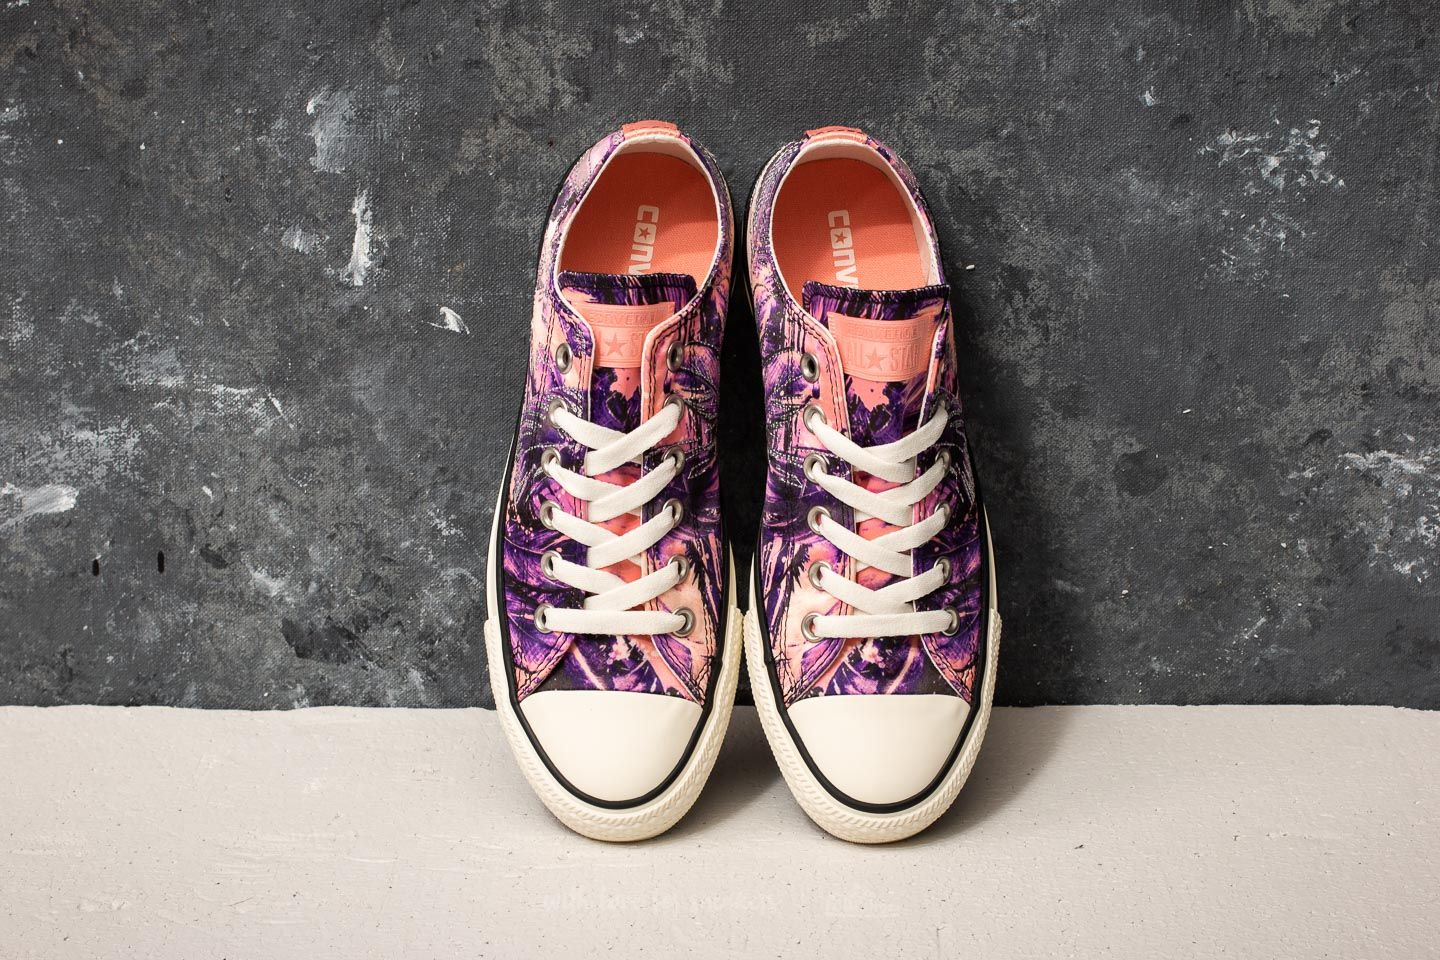 Converse Chuck Taylor All Star Ox Hyper Royal Pale Coral